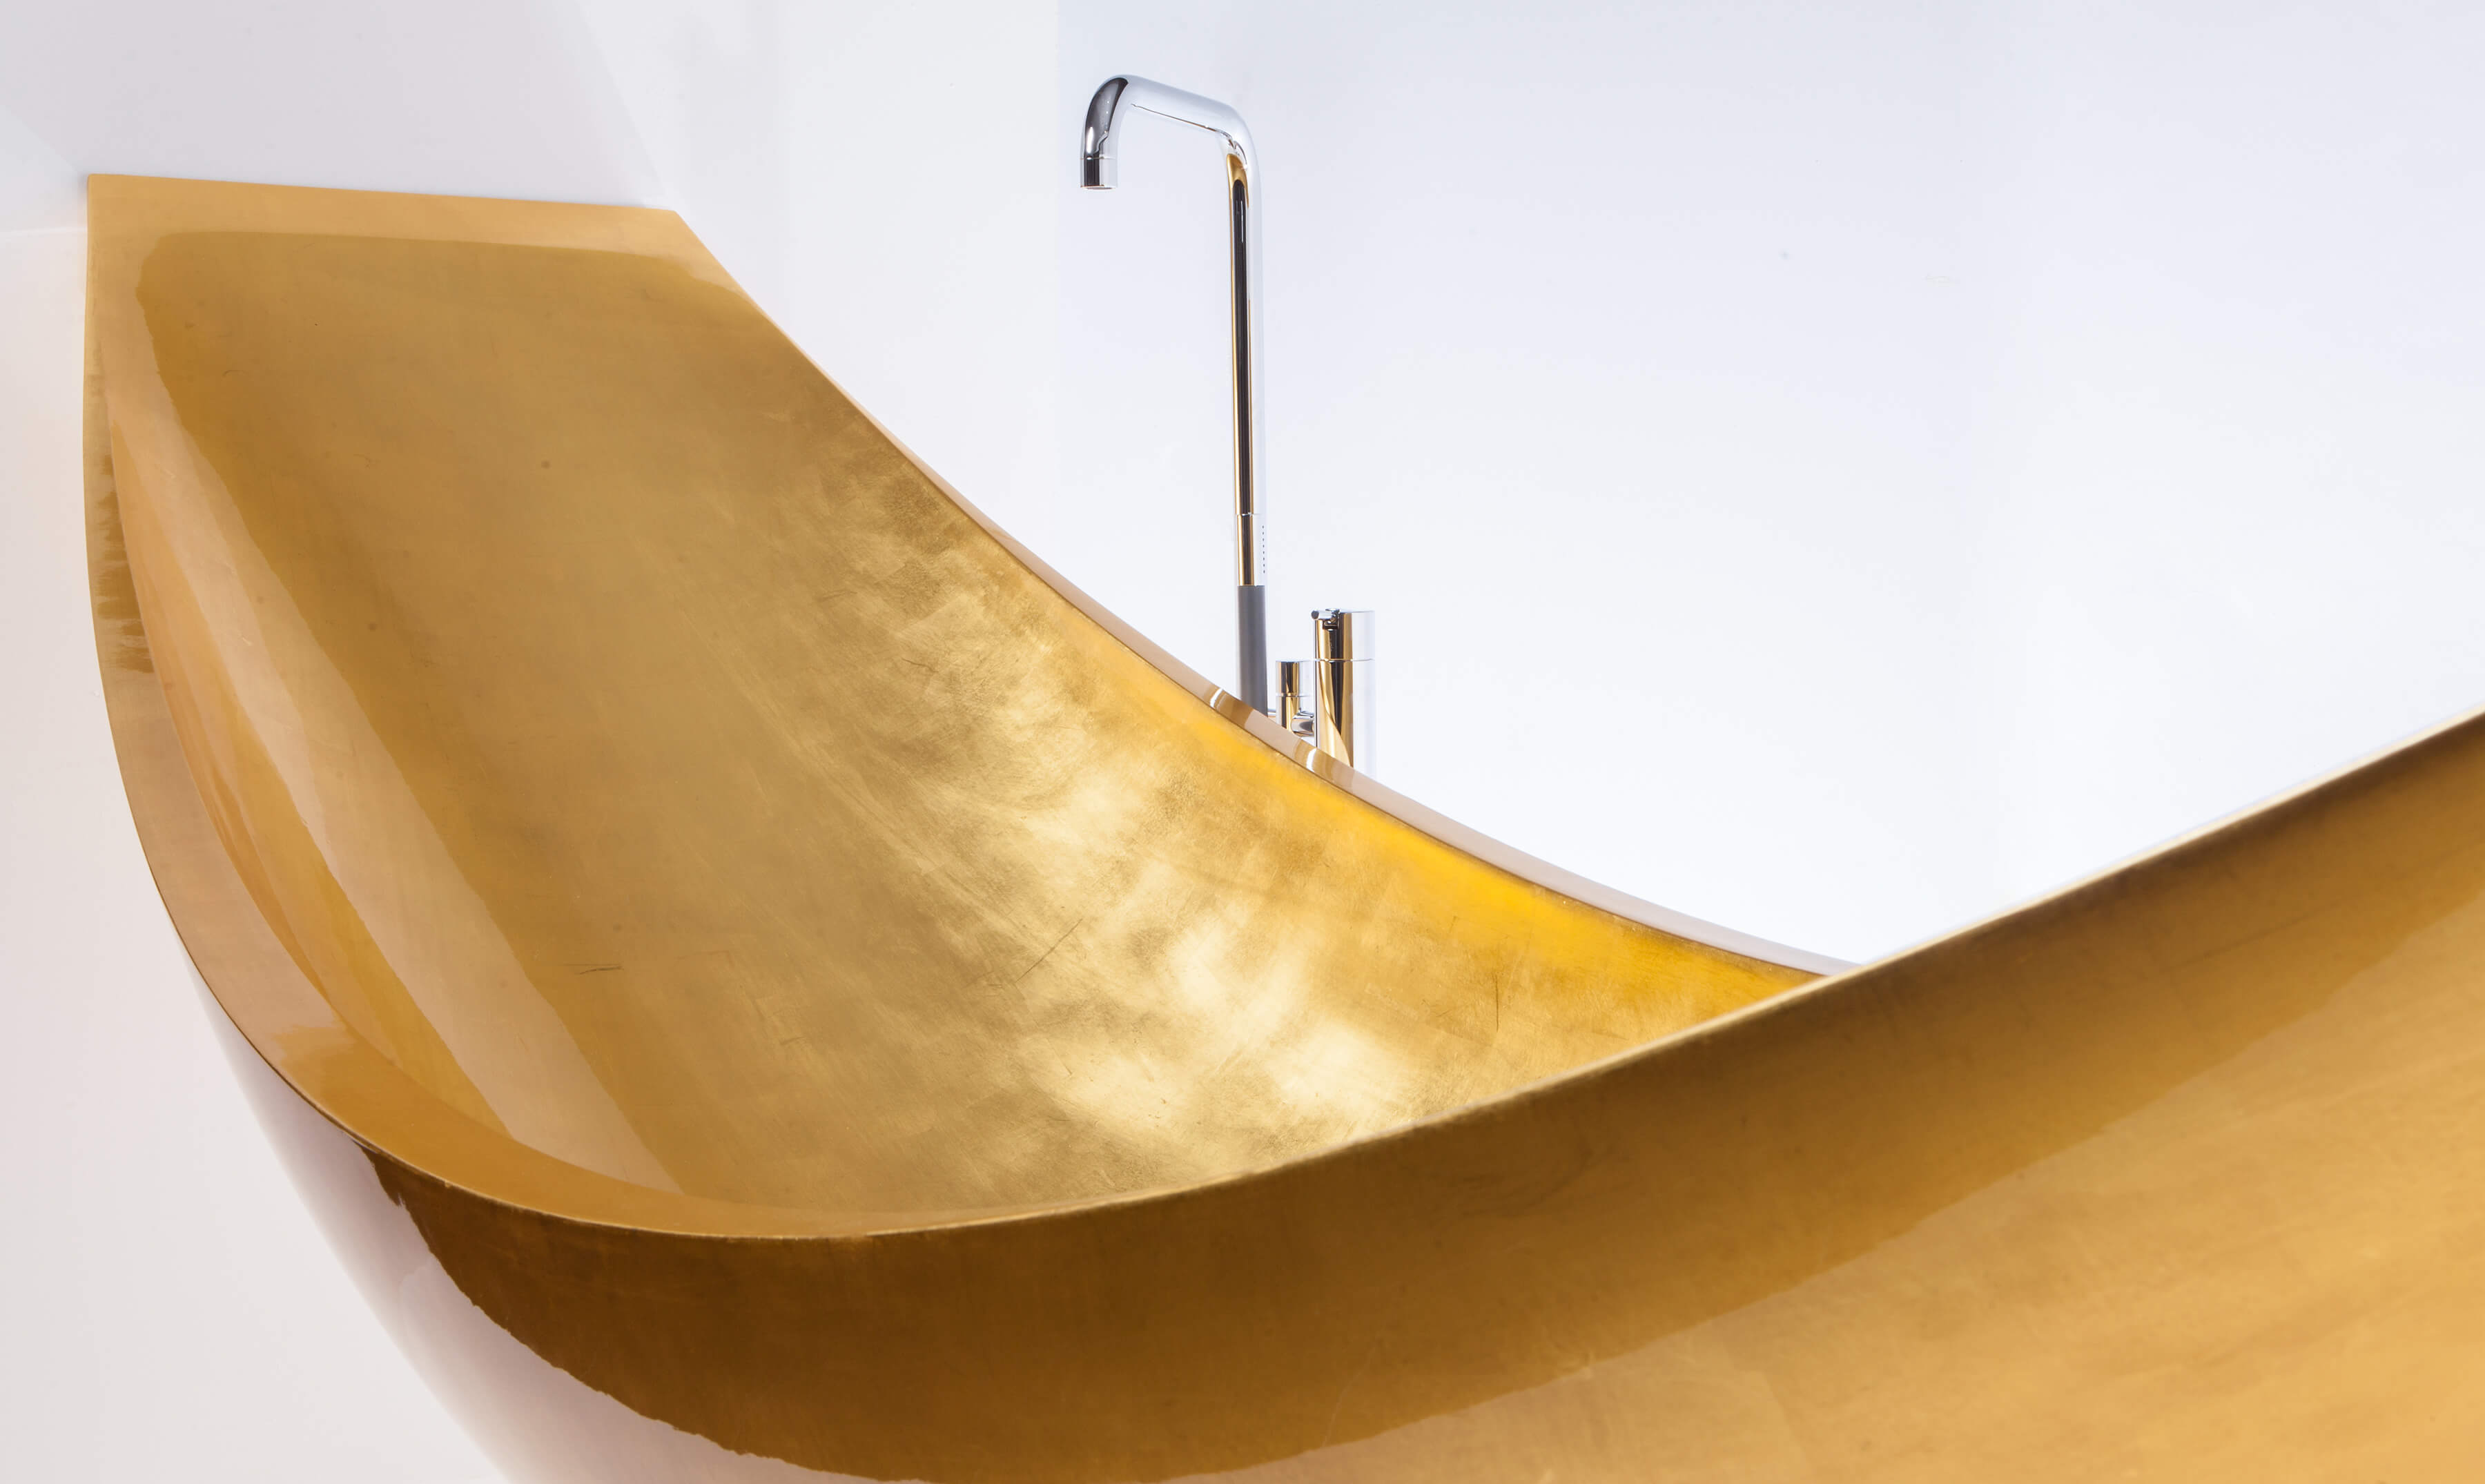 Gilded bath in 24 carrot gold manufactured by Splinterworks